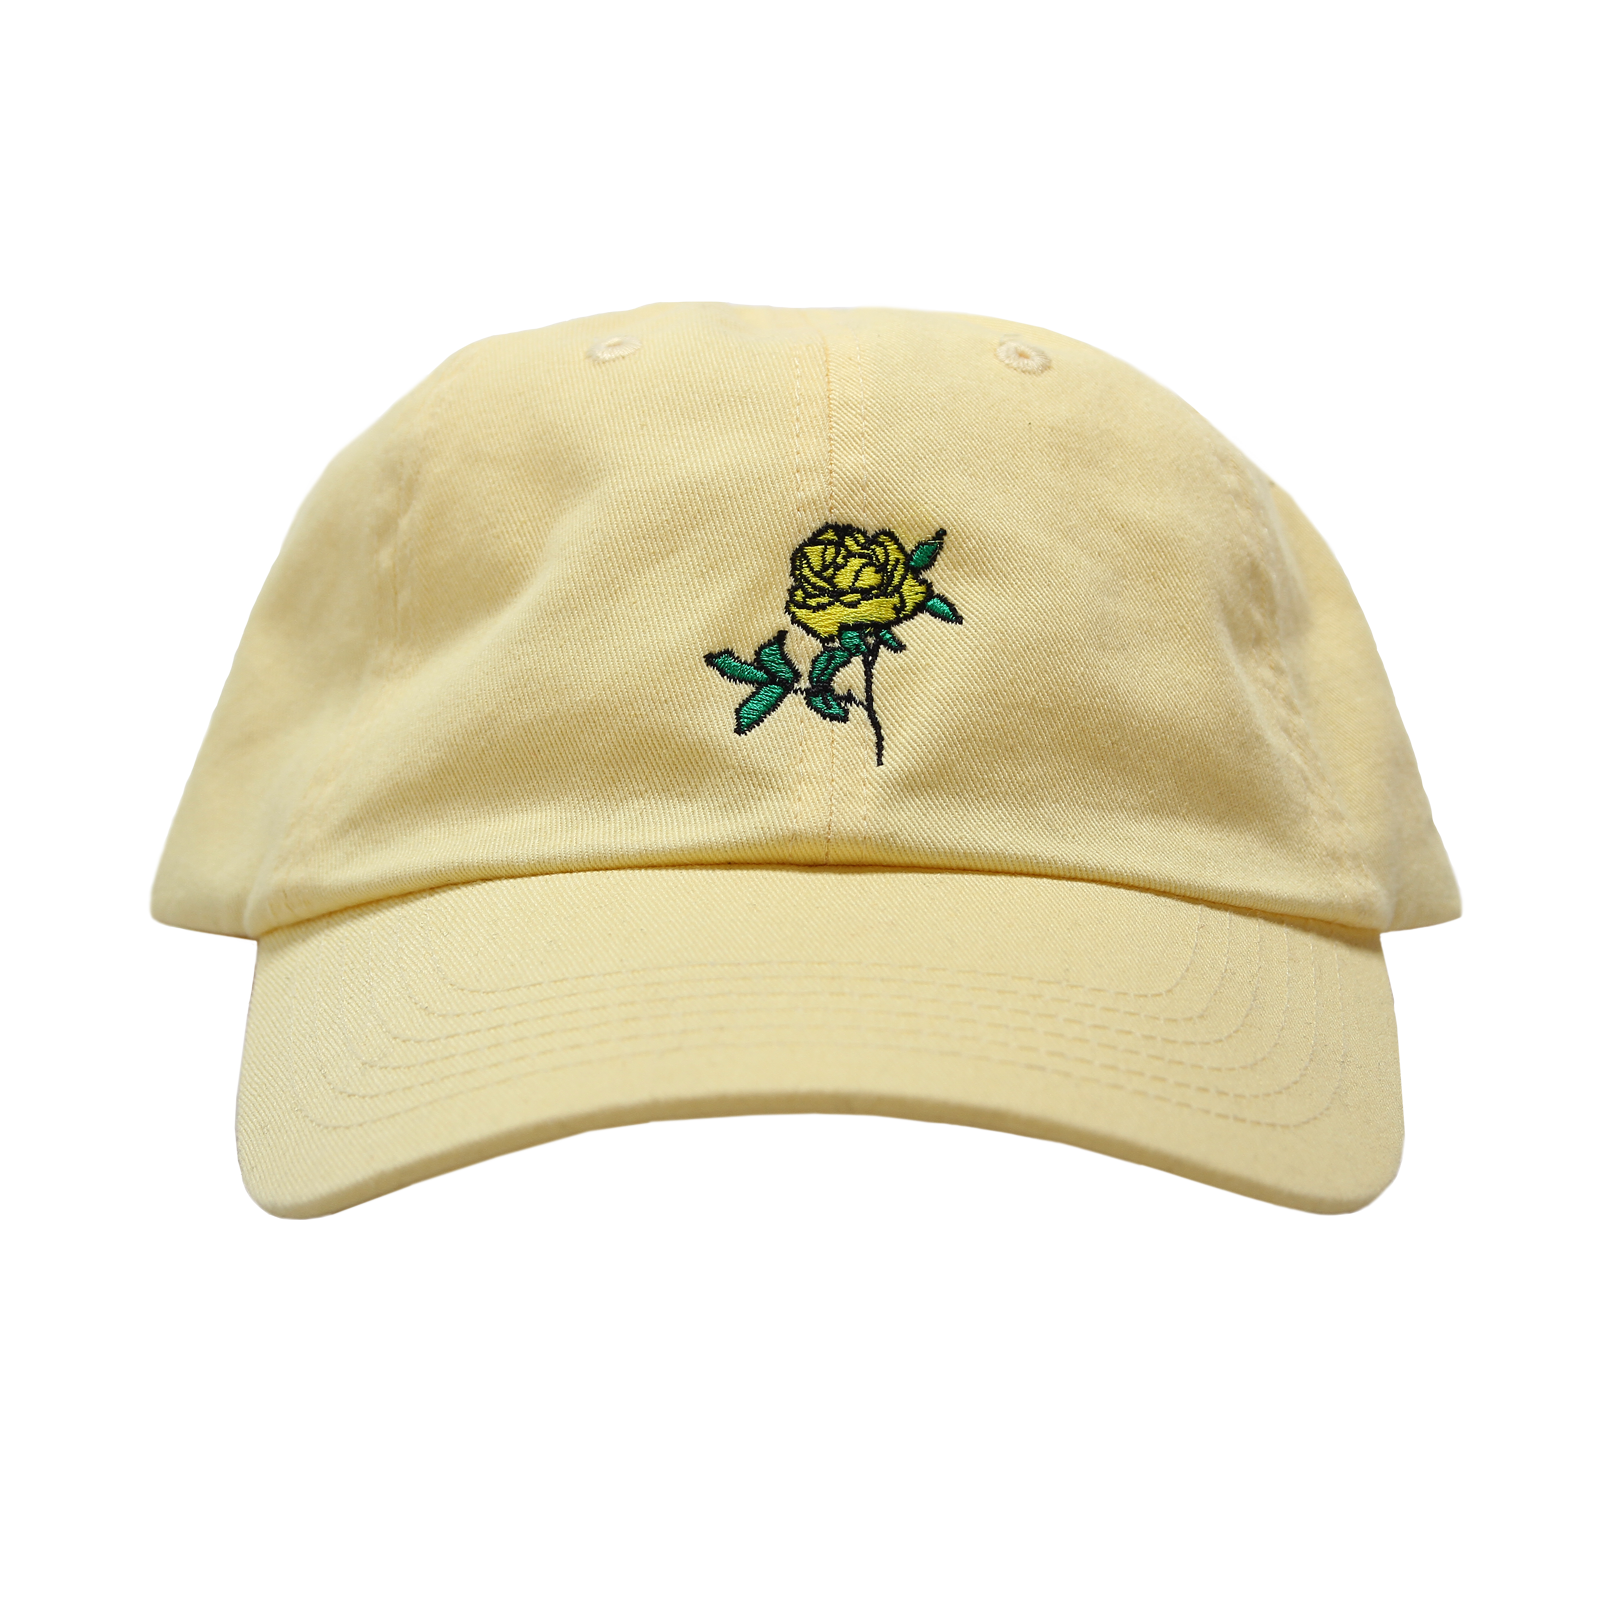 eea1e74385e Yellow dad hat featuring an embroidered yellow rose with Lemonade s  Anniversary date embroidered on back.